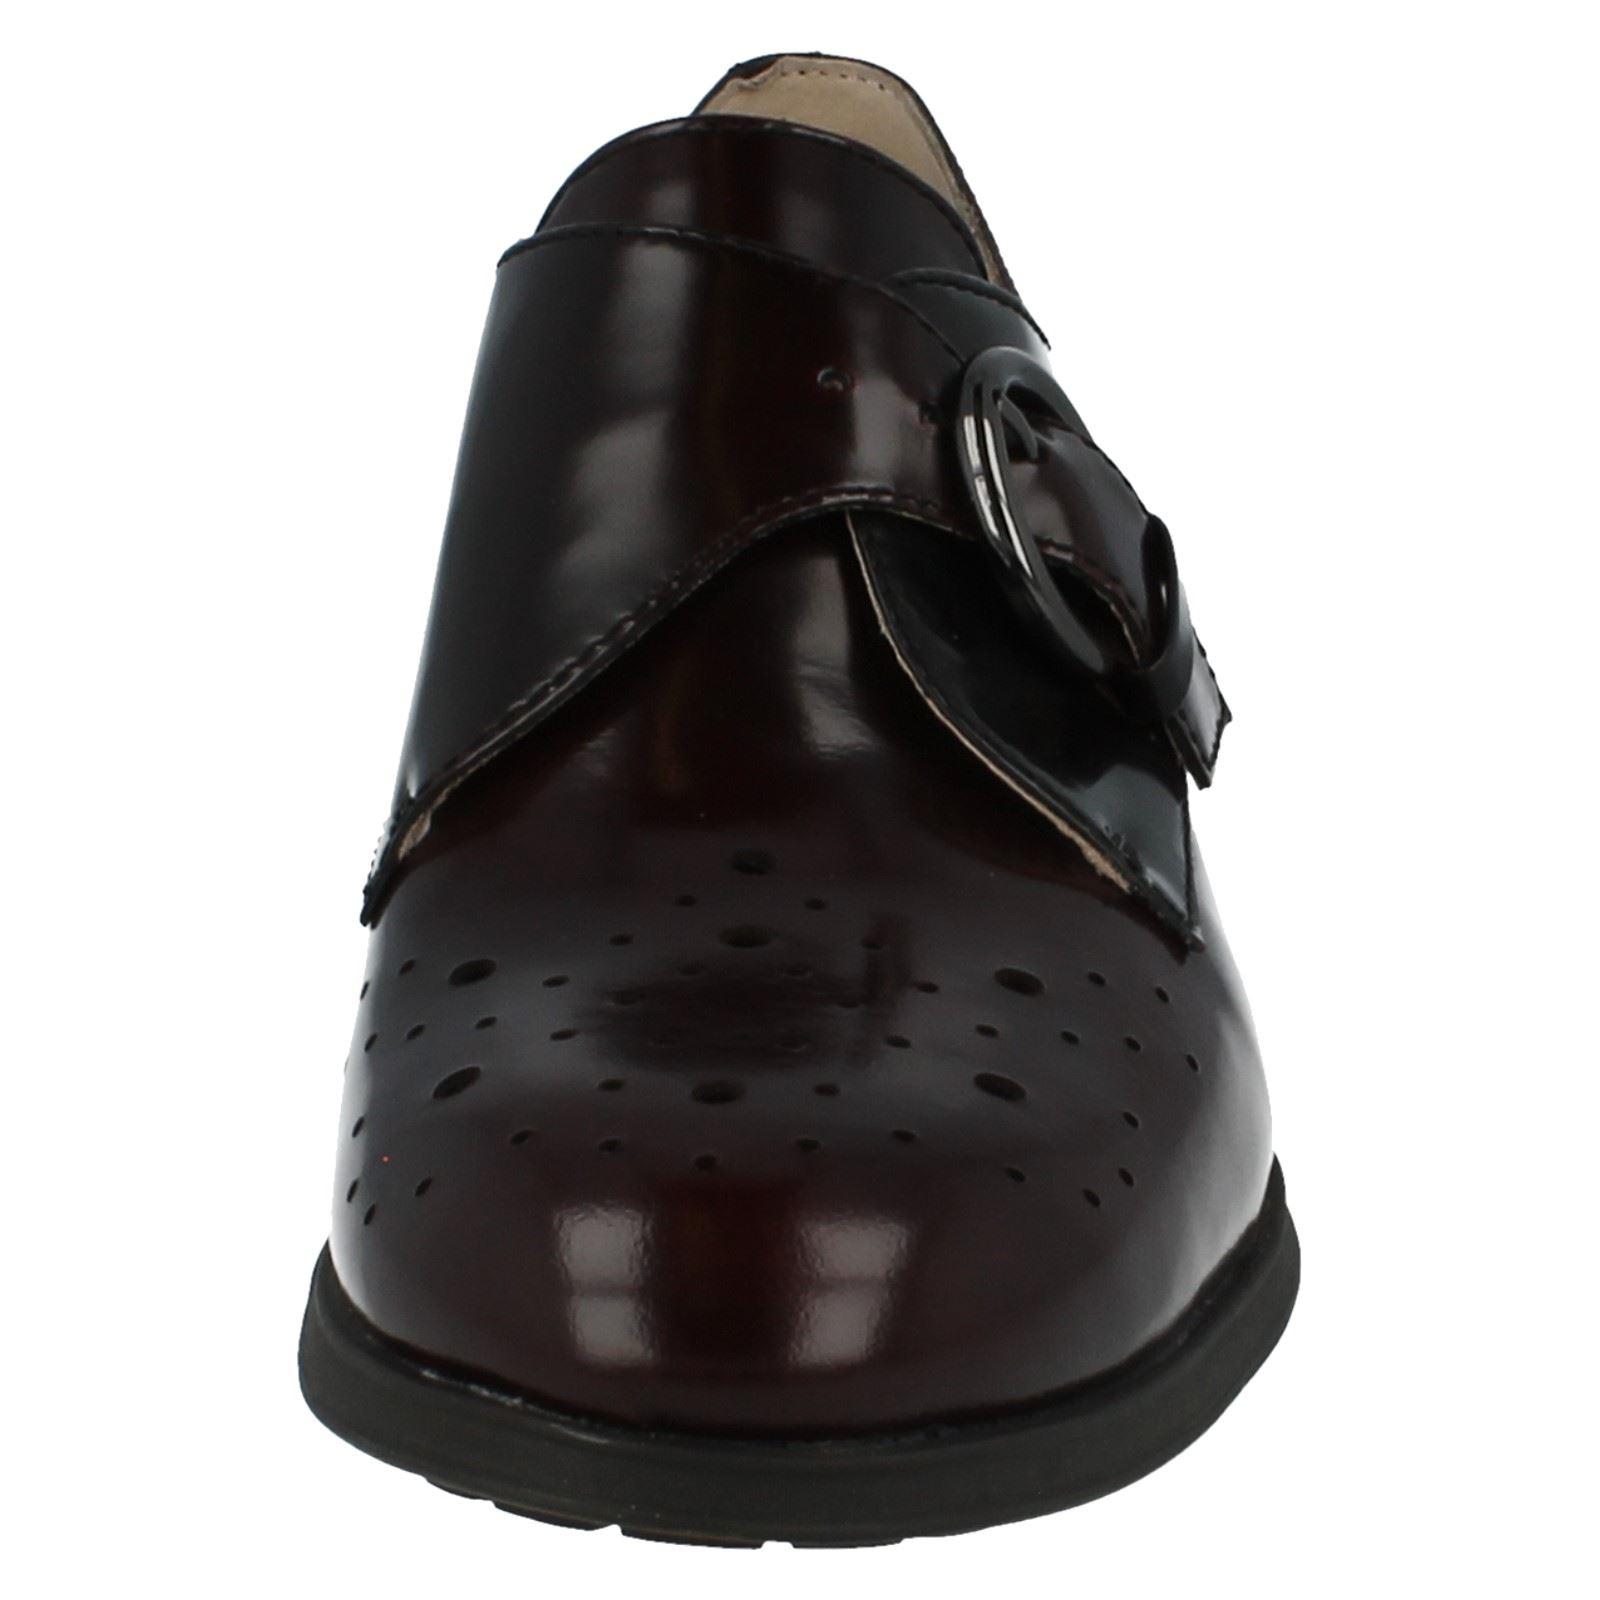 mesdames les chaussures clarks jazz style - busby jazz clarks 7183b7